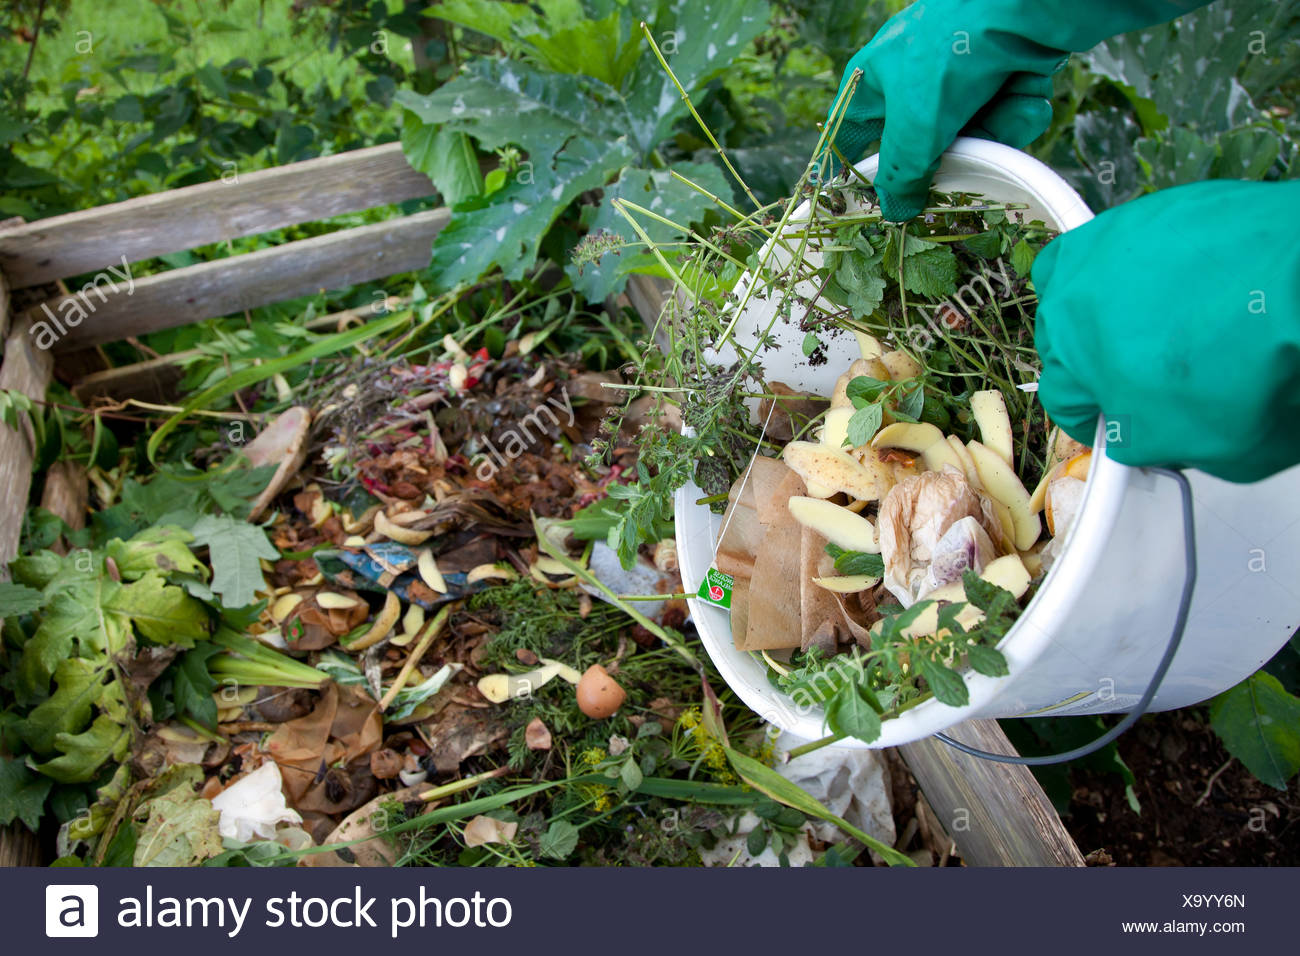 Organic waste, compost, compost heap, Germany, Europe - Stock Image